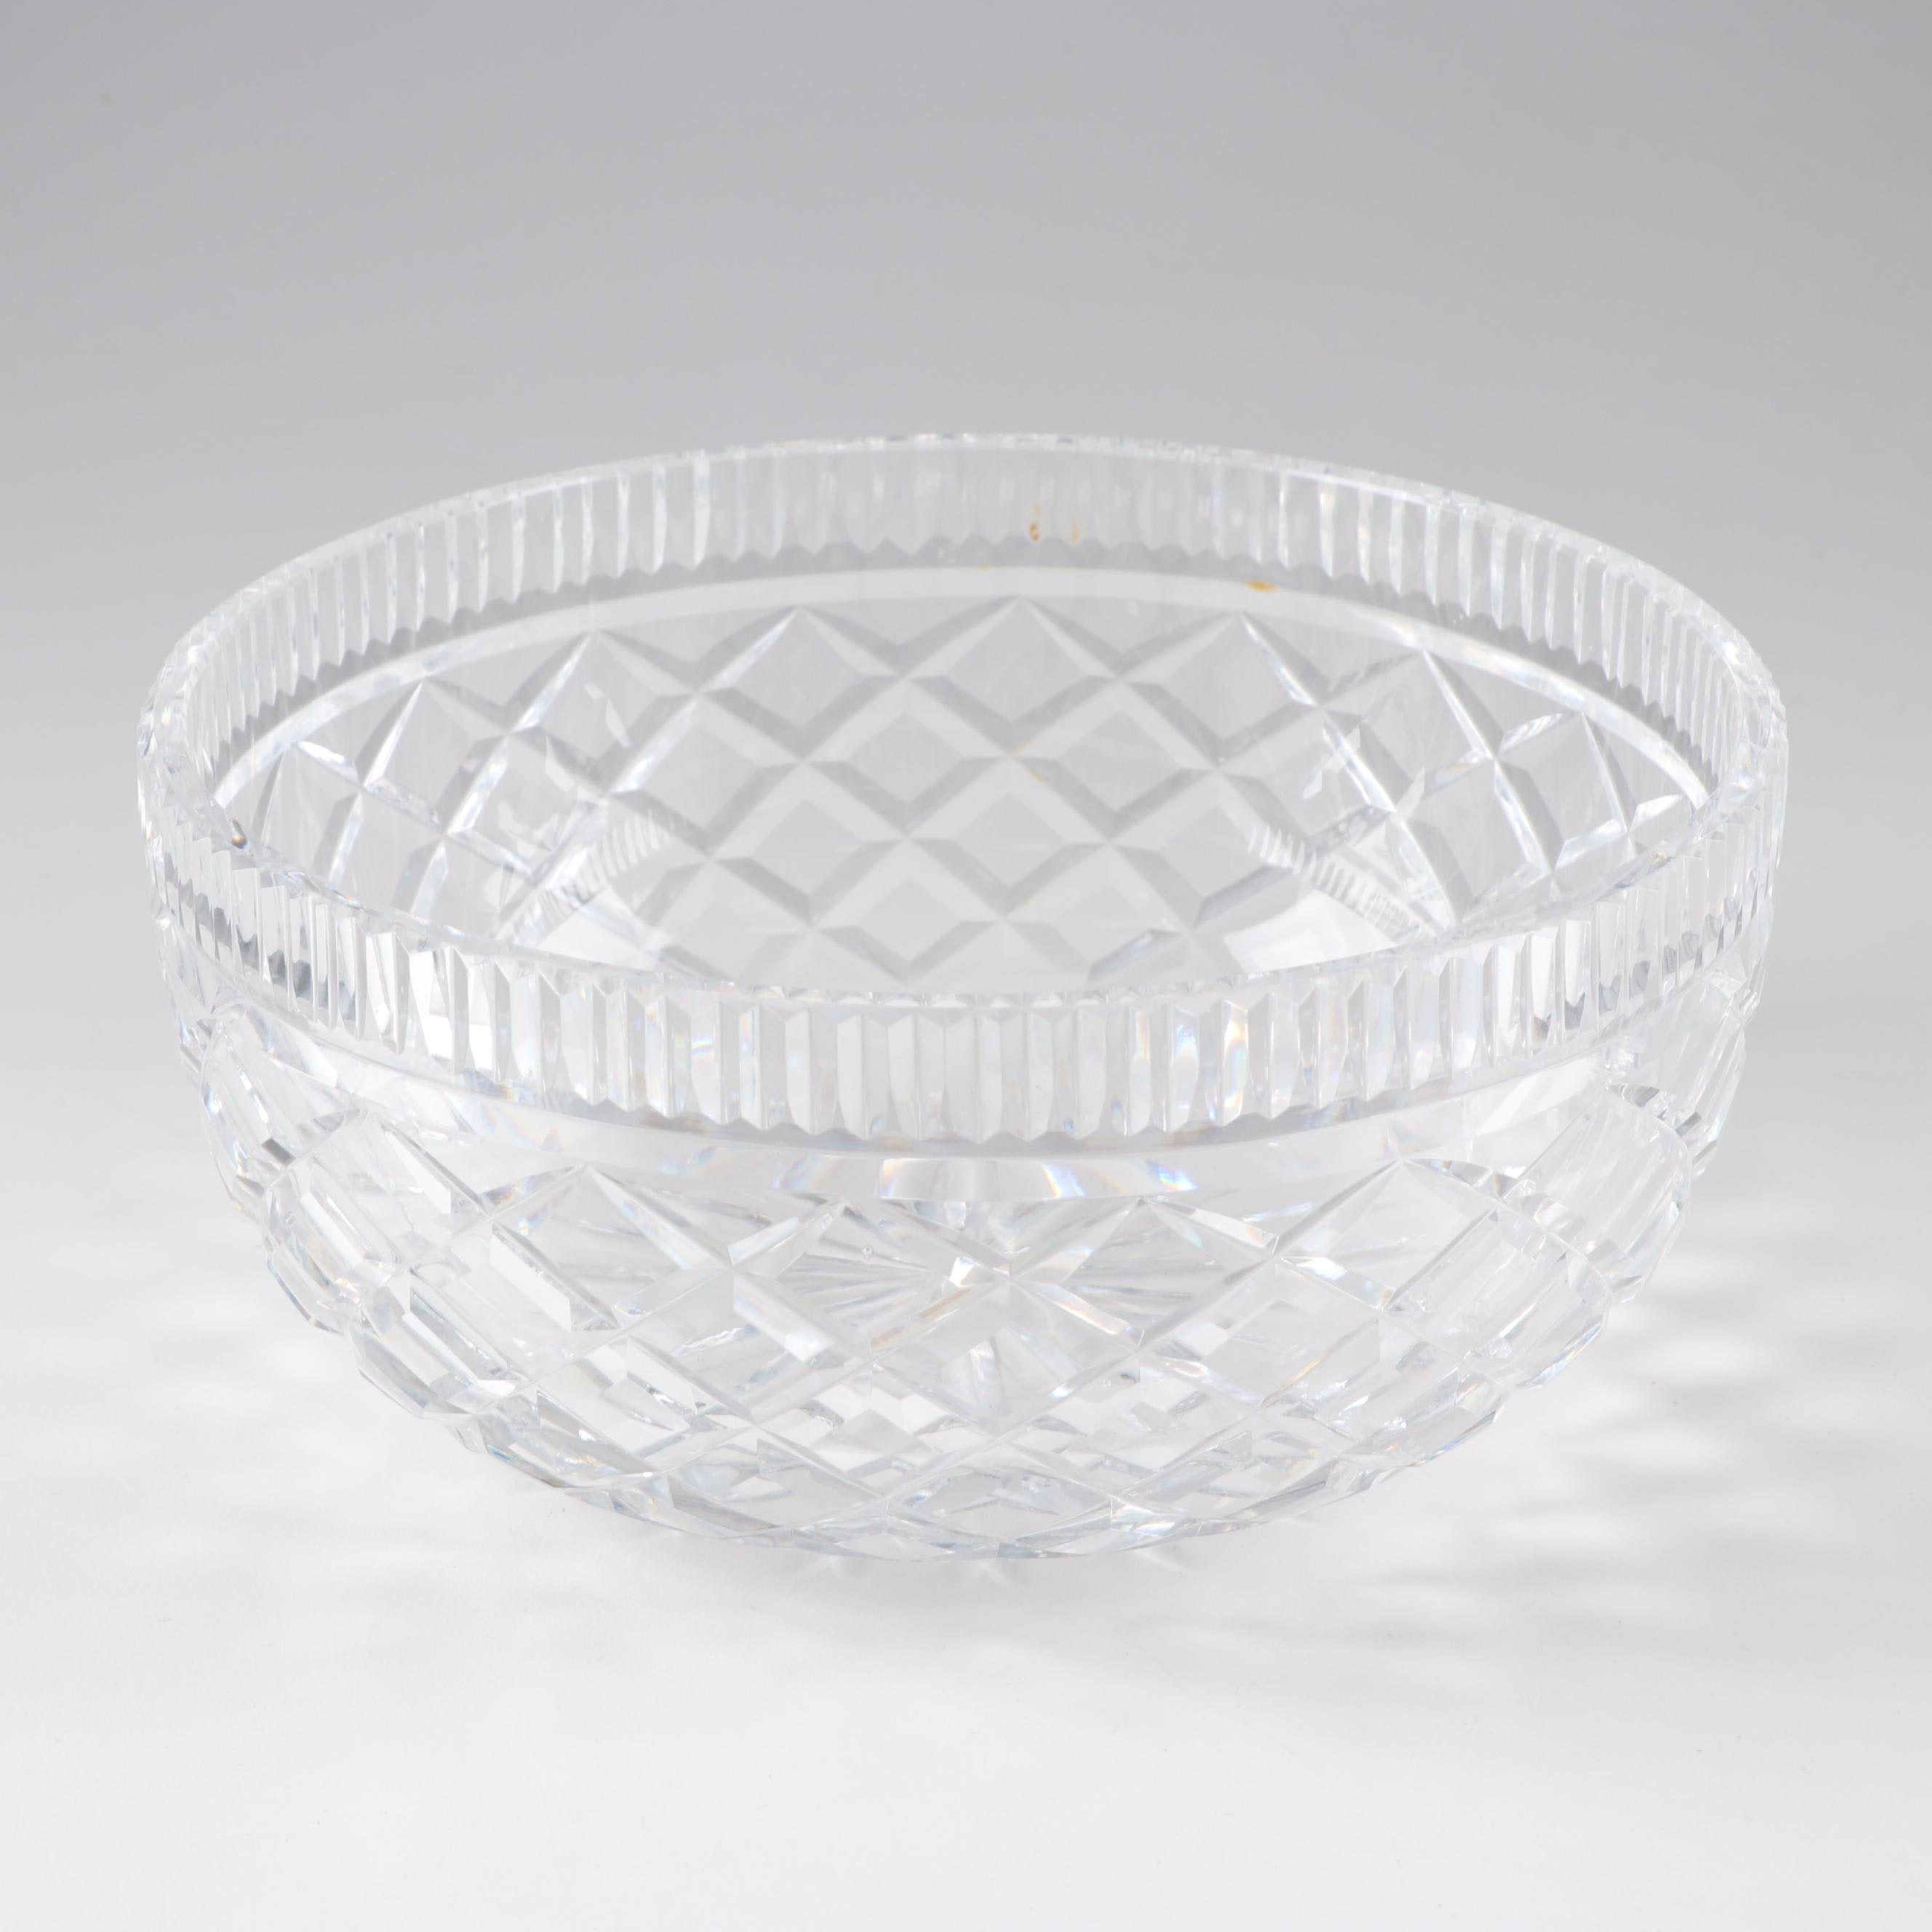 Waterford Crystal Bowl